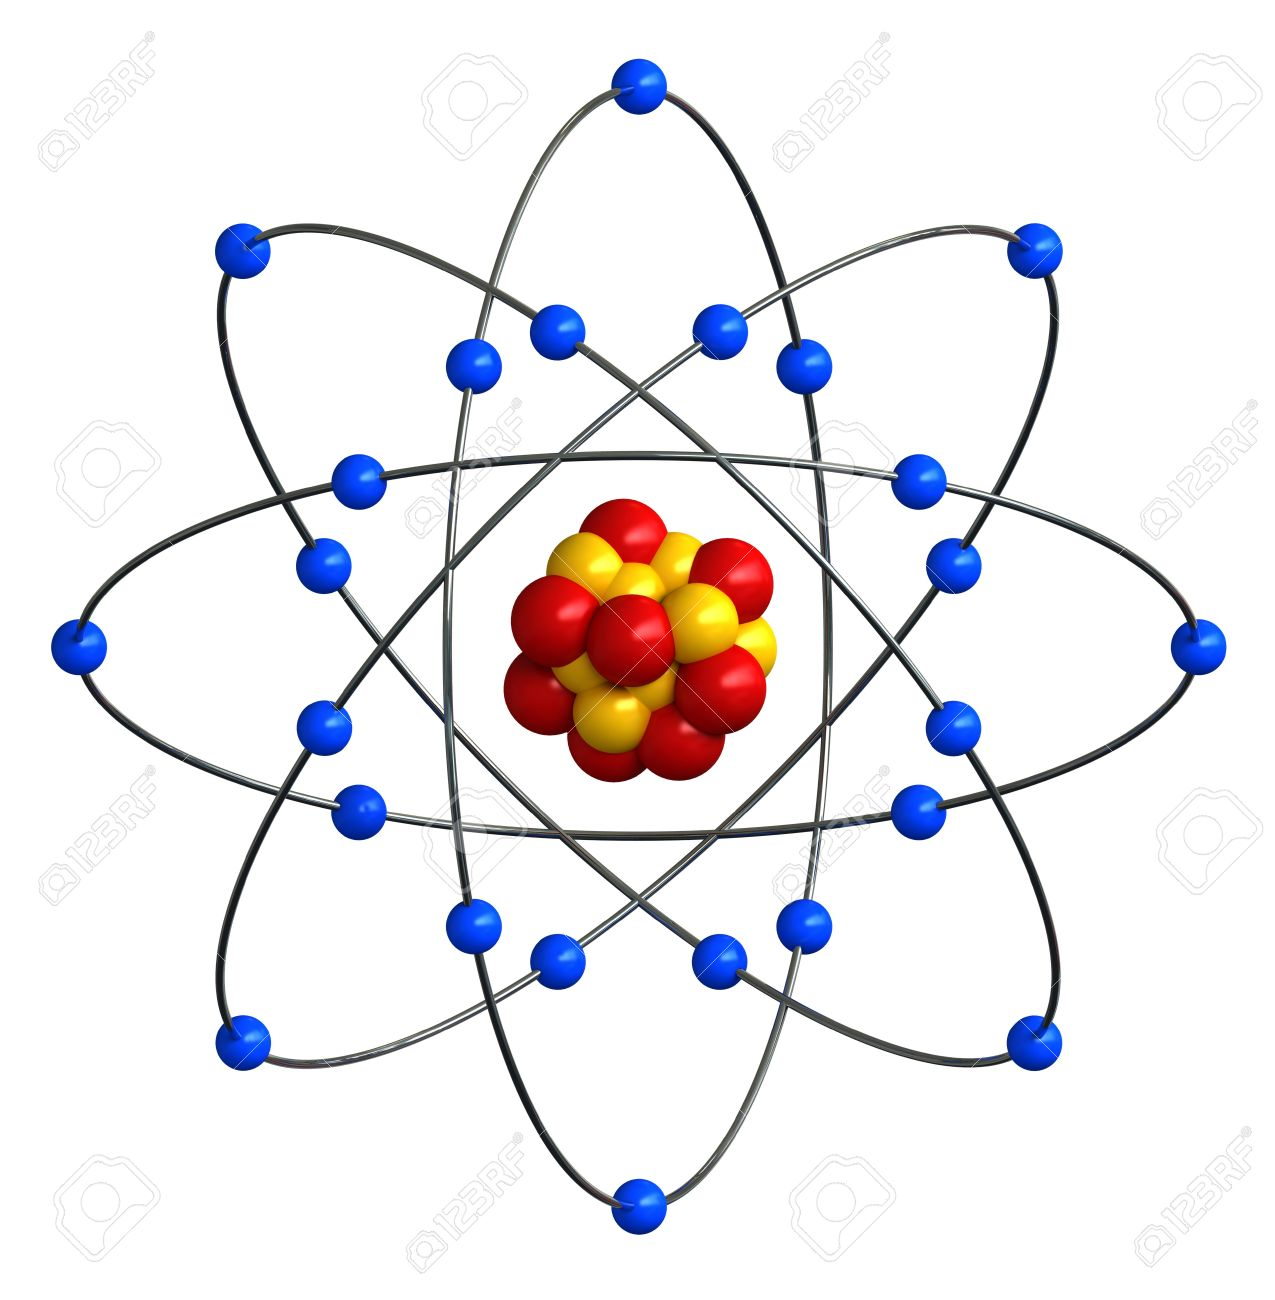 3d Render Of Abstract Atomic Structure Stock Photo, Picture And ...